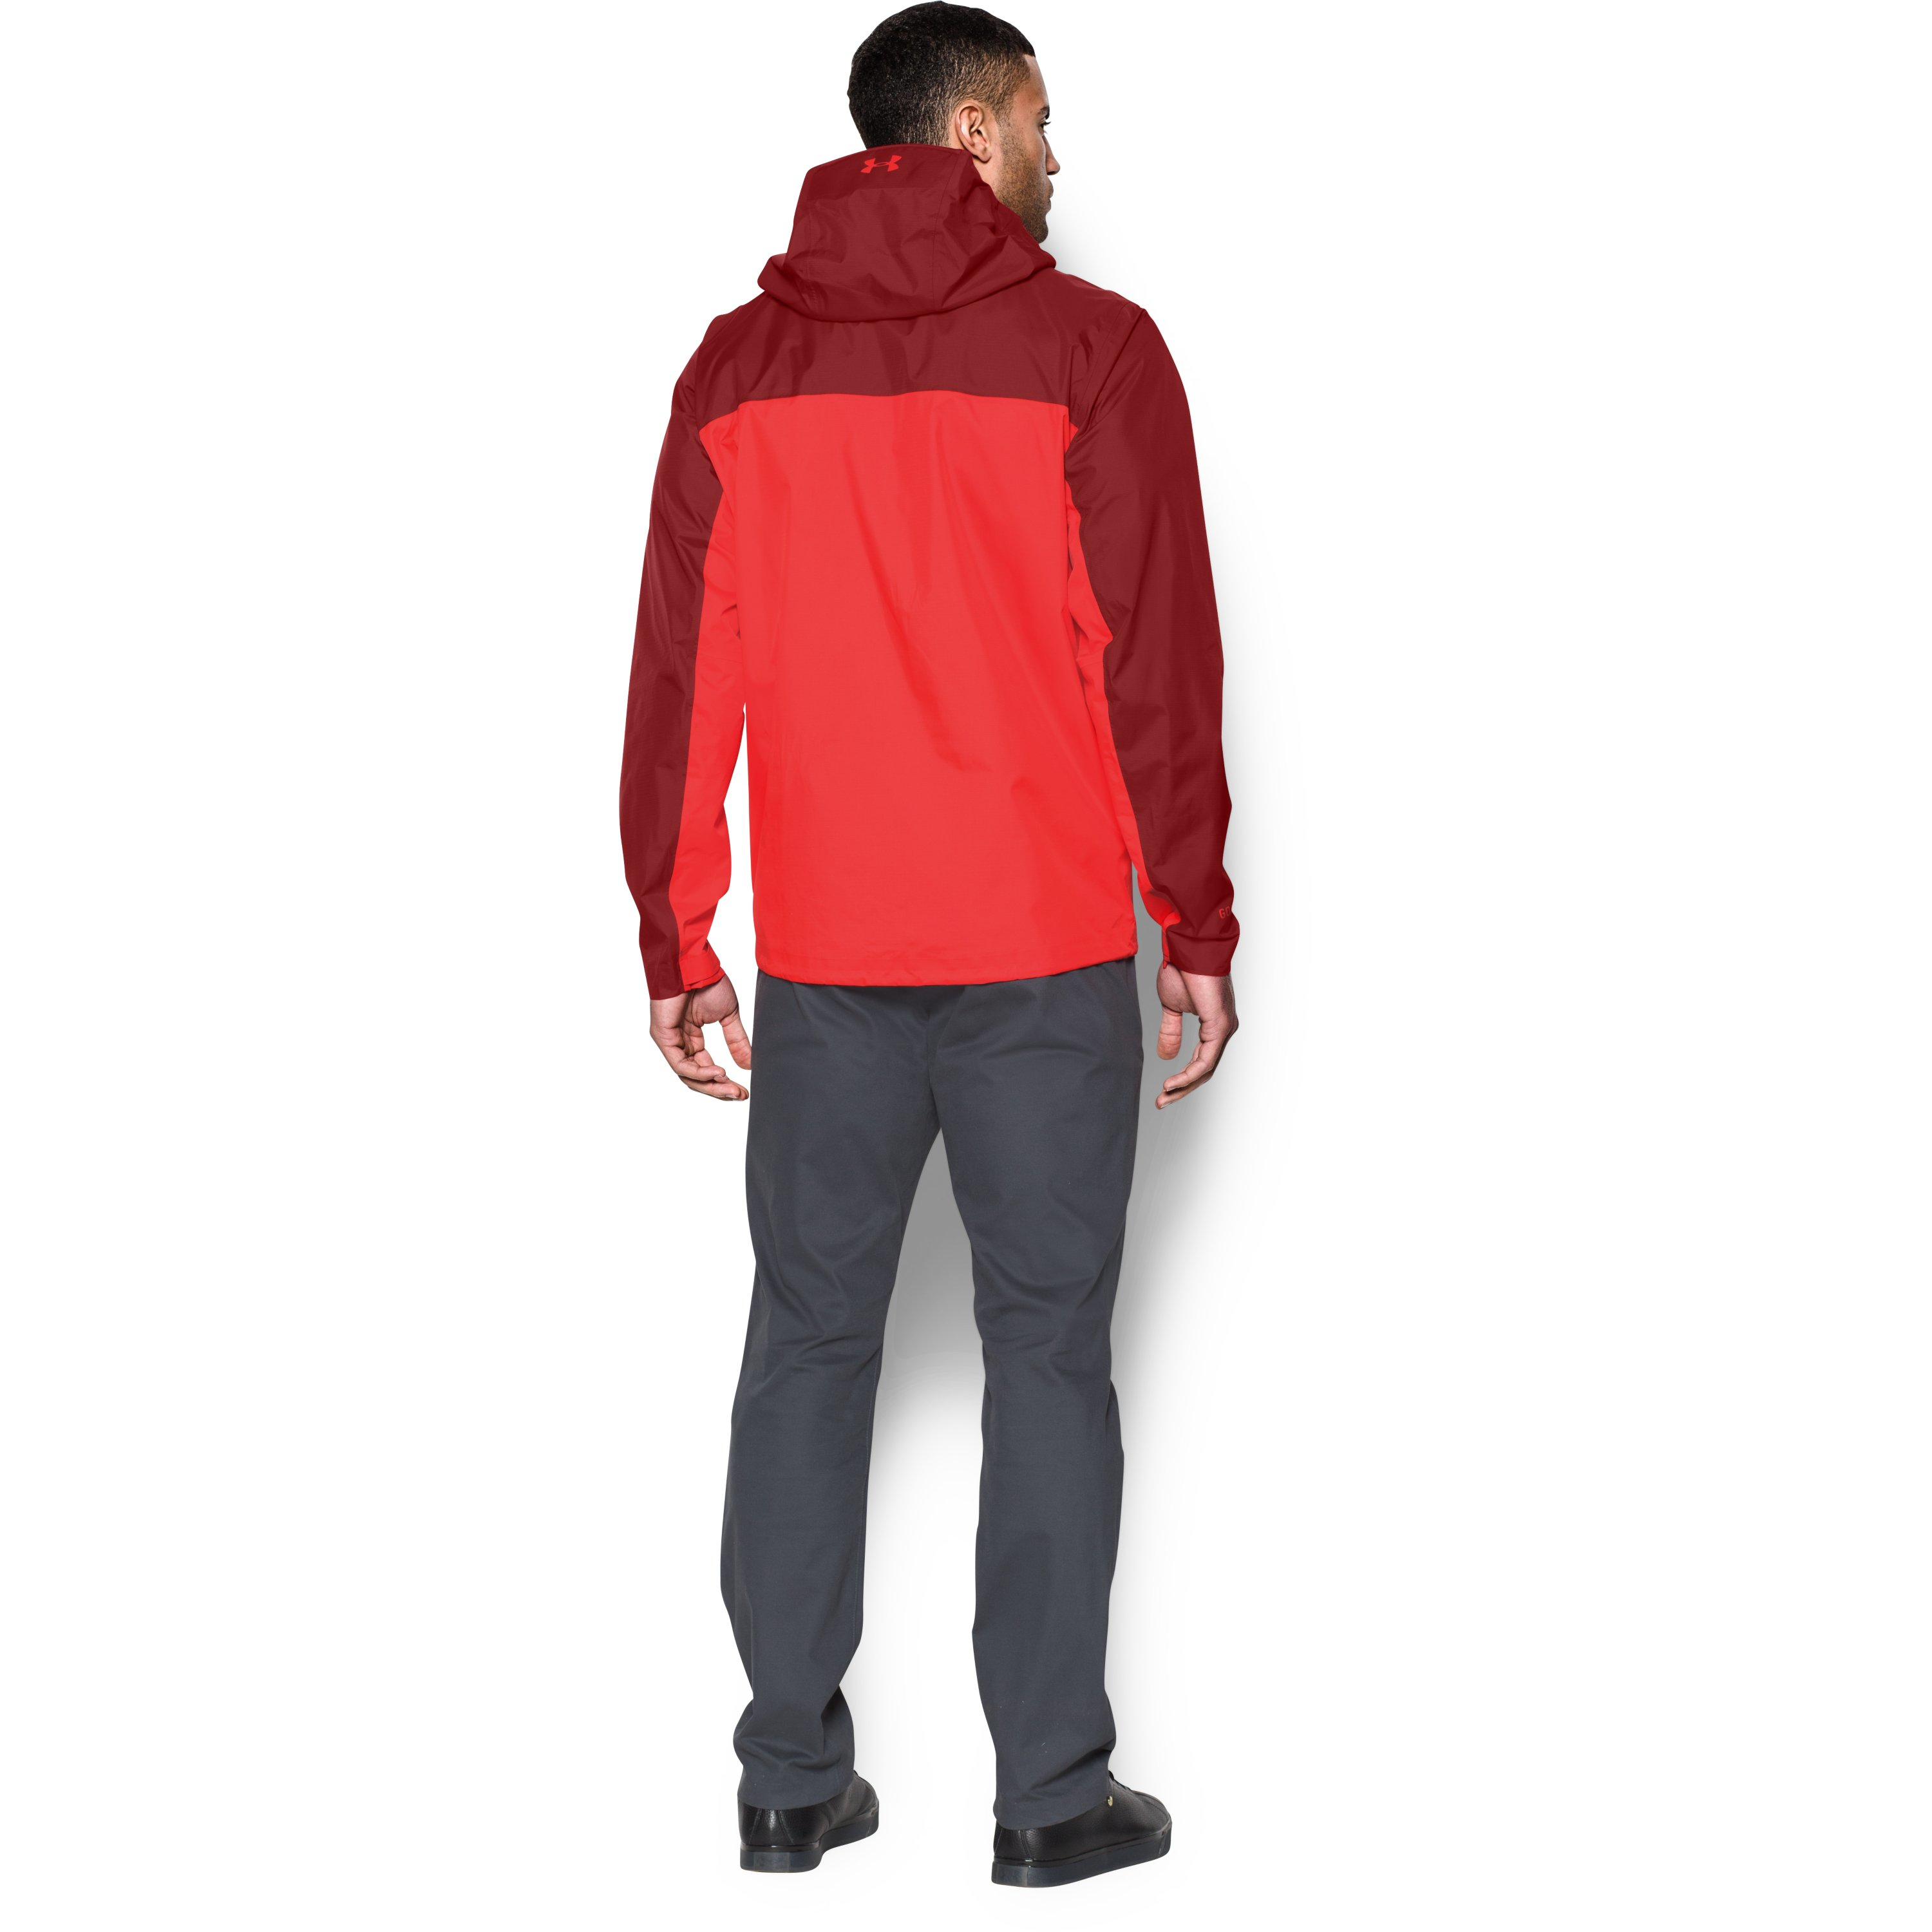 7ab00e67c Under Armour Men's Ua Storm Hurakan Paclite Waterproof Jacket in ...